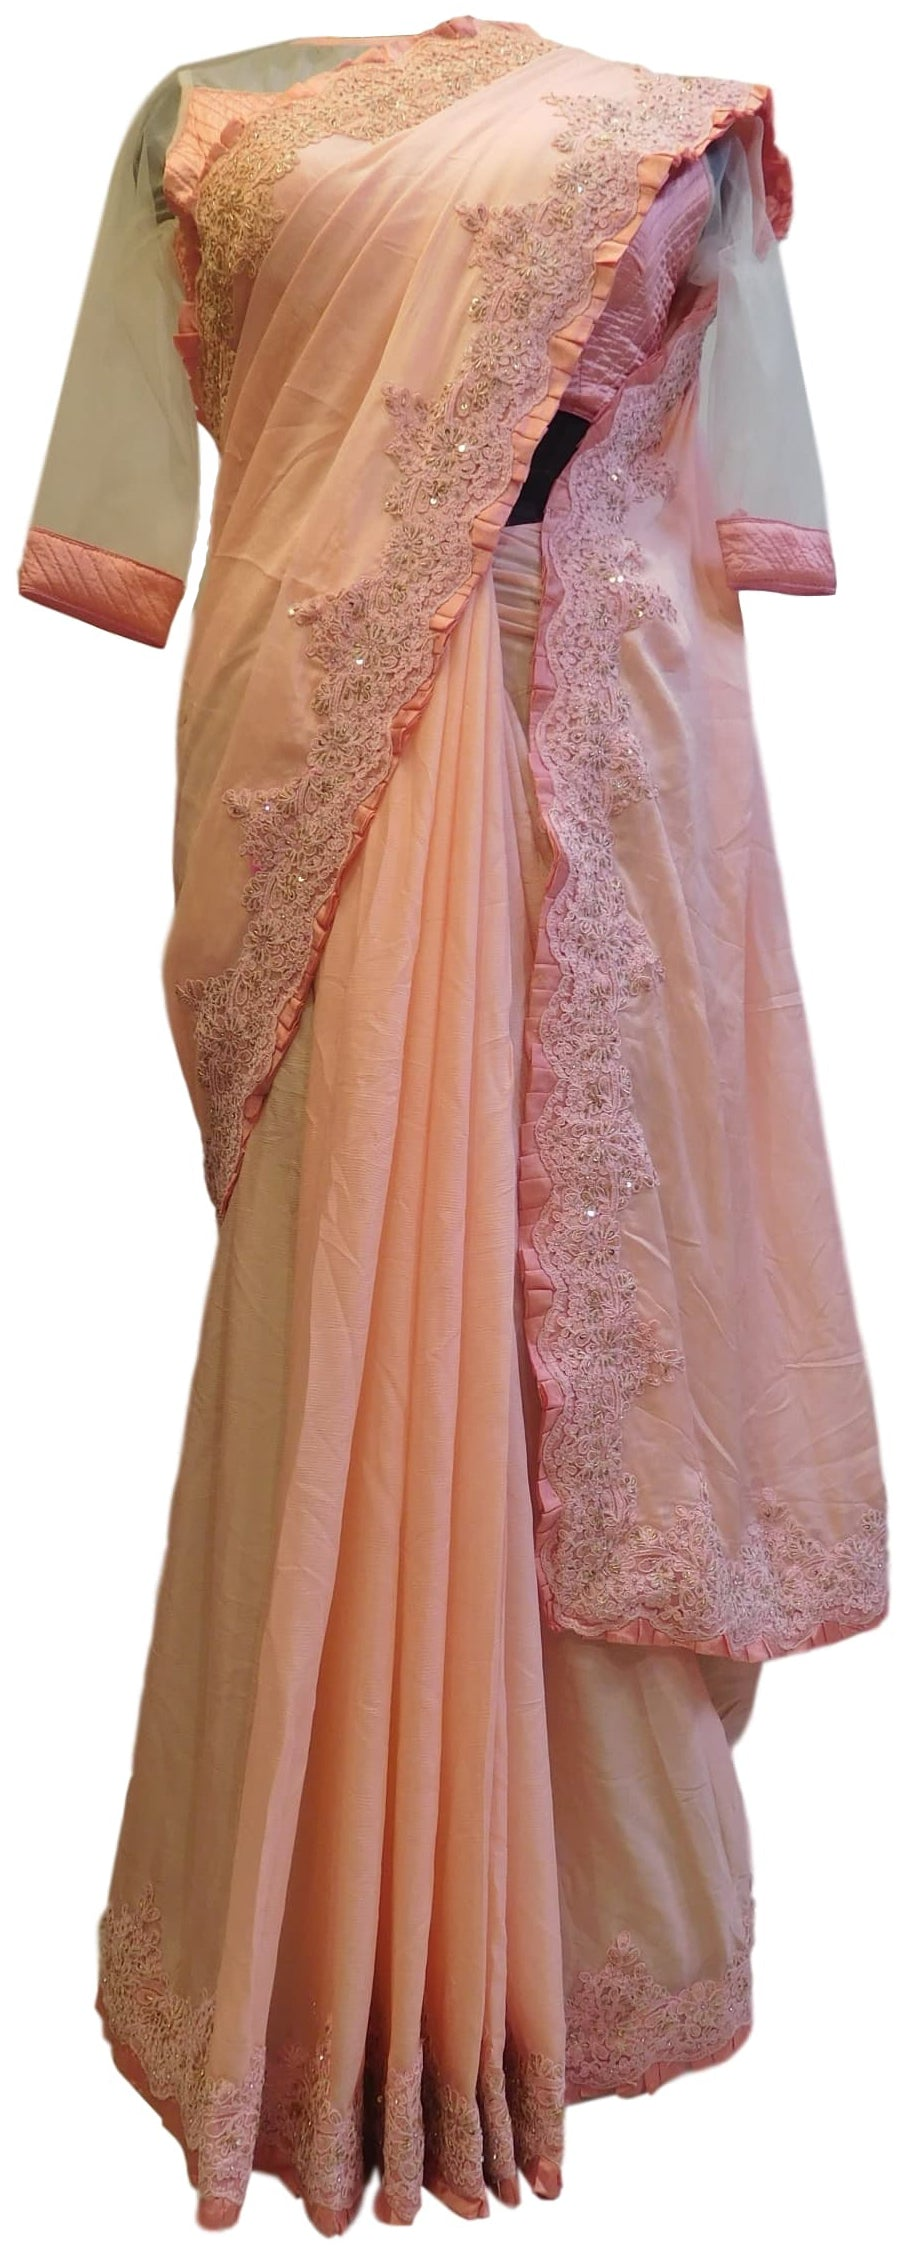 Baby Pink Designer Crepe (Chinon) Hand Embroidery Cutdana Sequence Thread Stone Work Saree Sari With Stylsih Stitched Satin Blouse